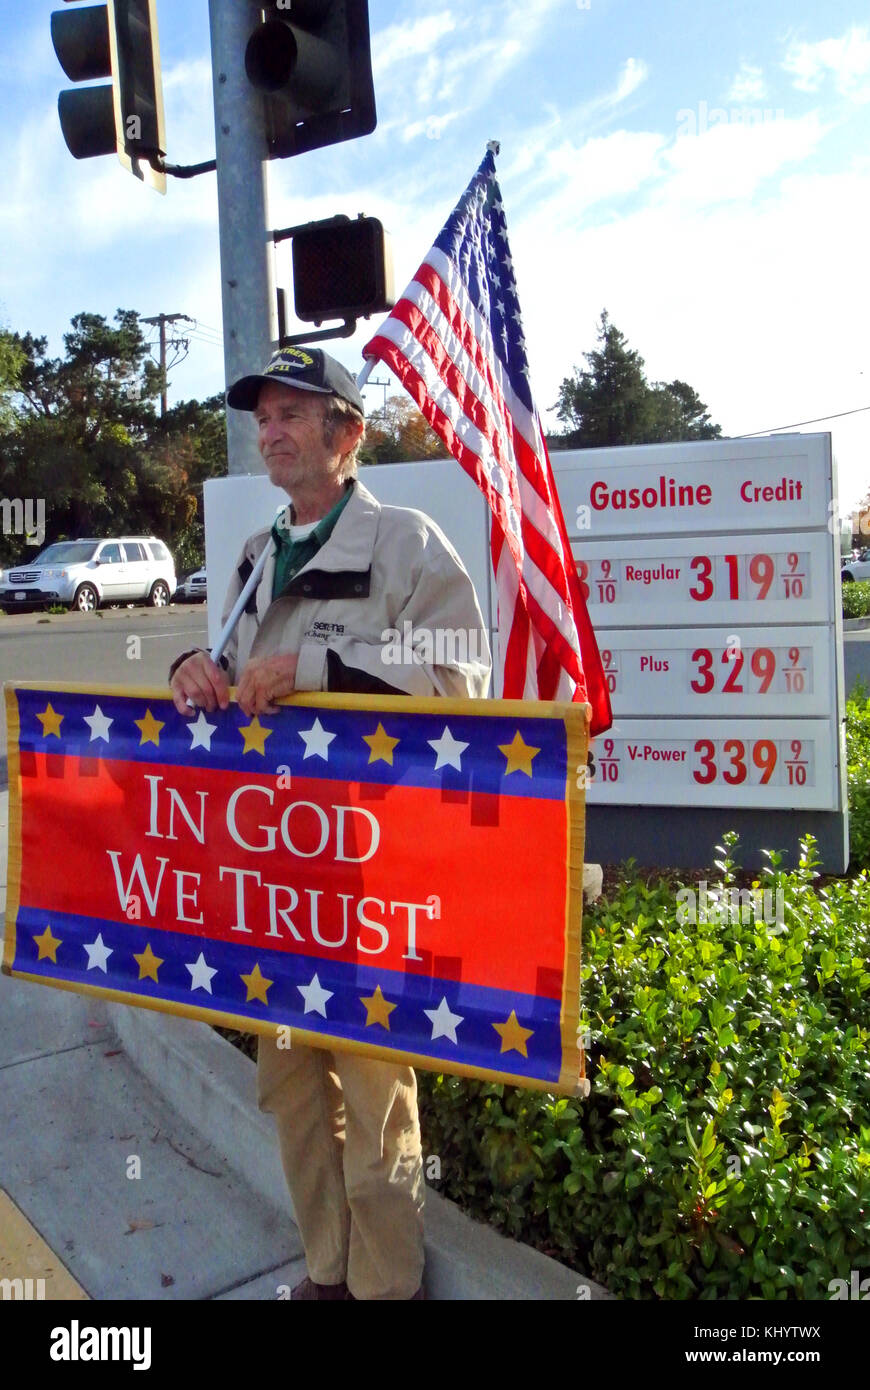 man named tom demonstrates for god and country in calif Stock Photo